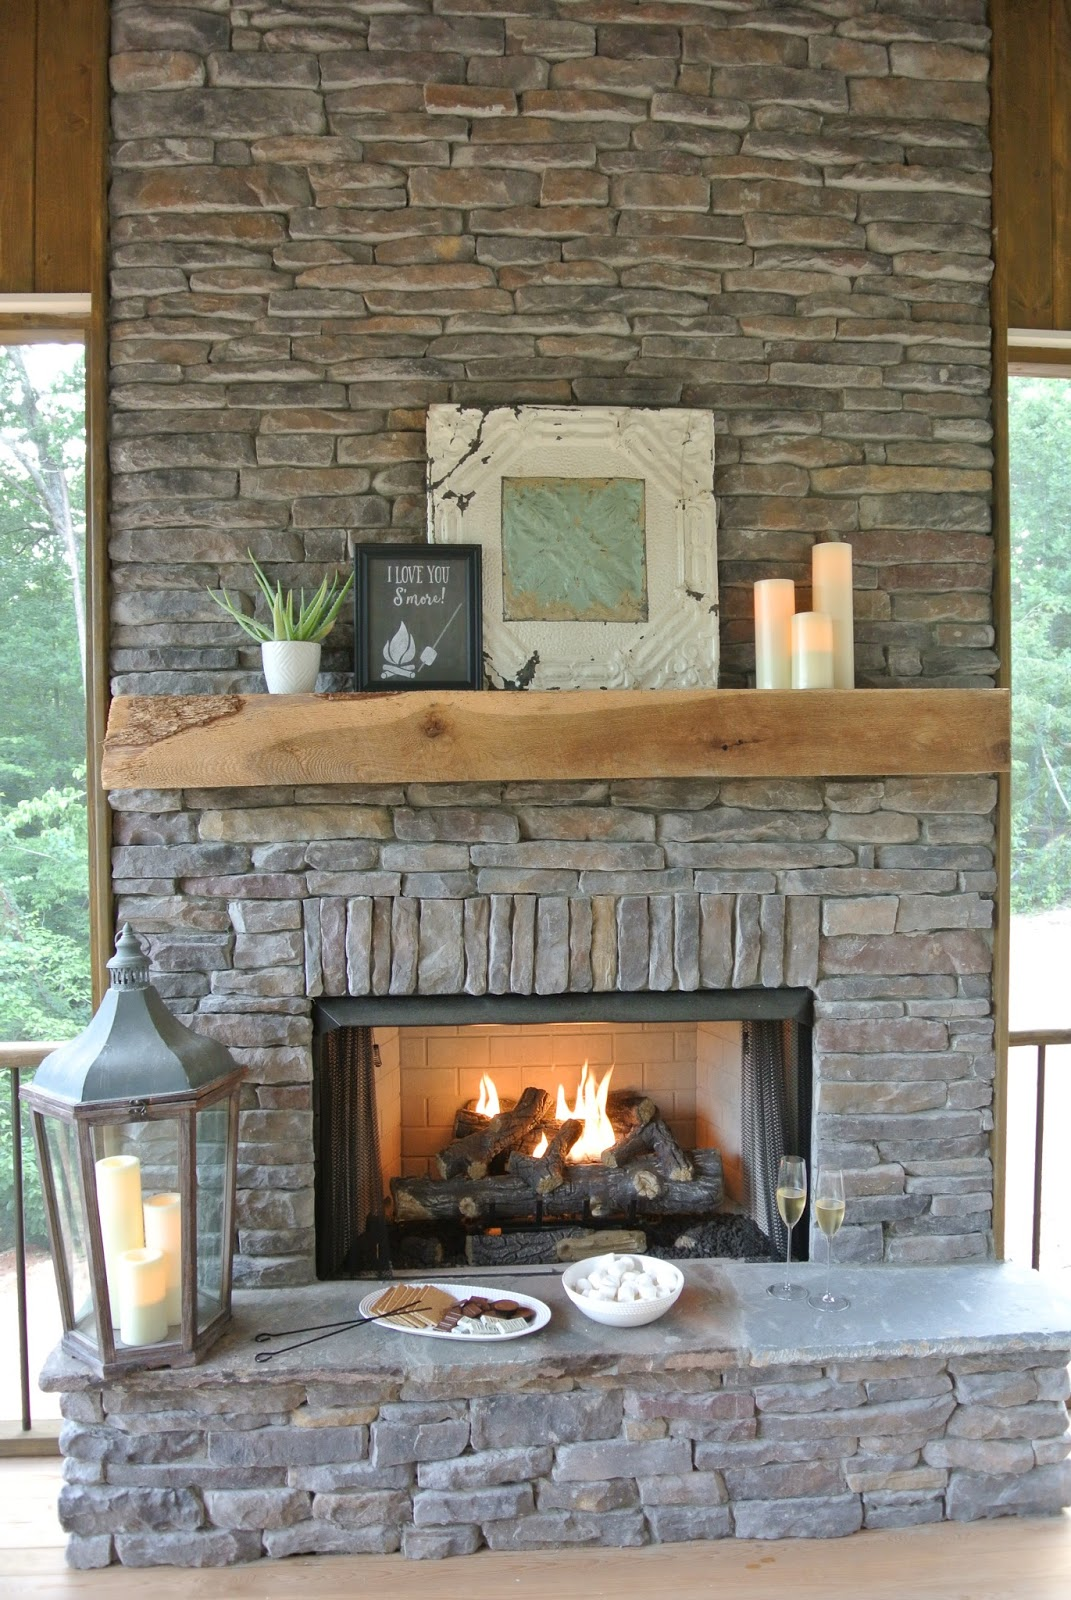 S'mores basket by fireplace mantel via blog.farmtofete.com/